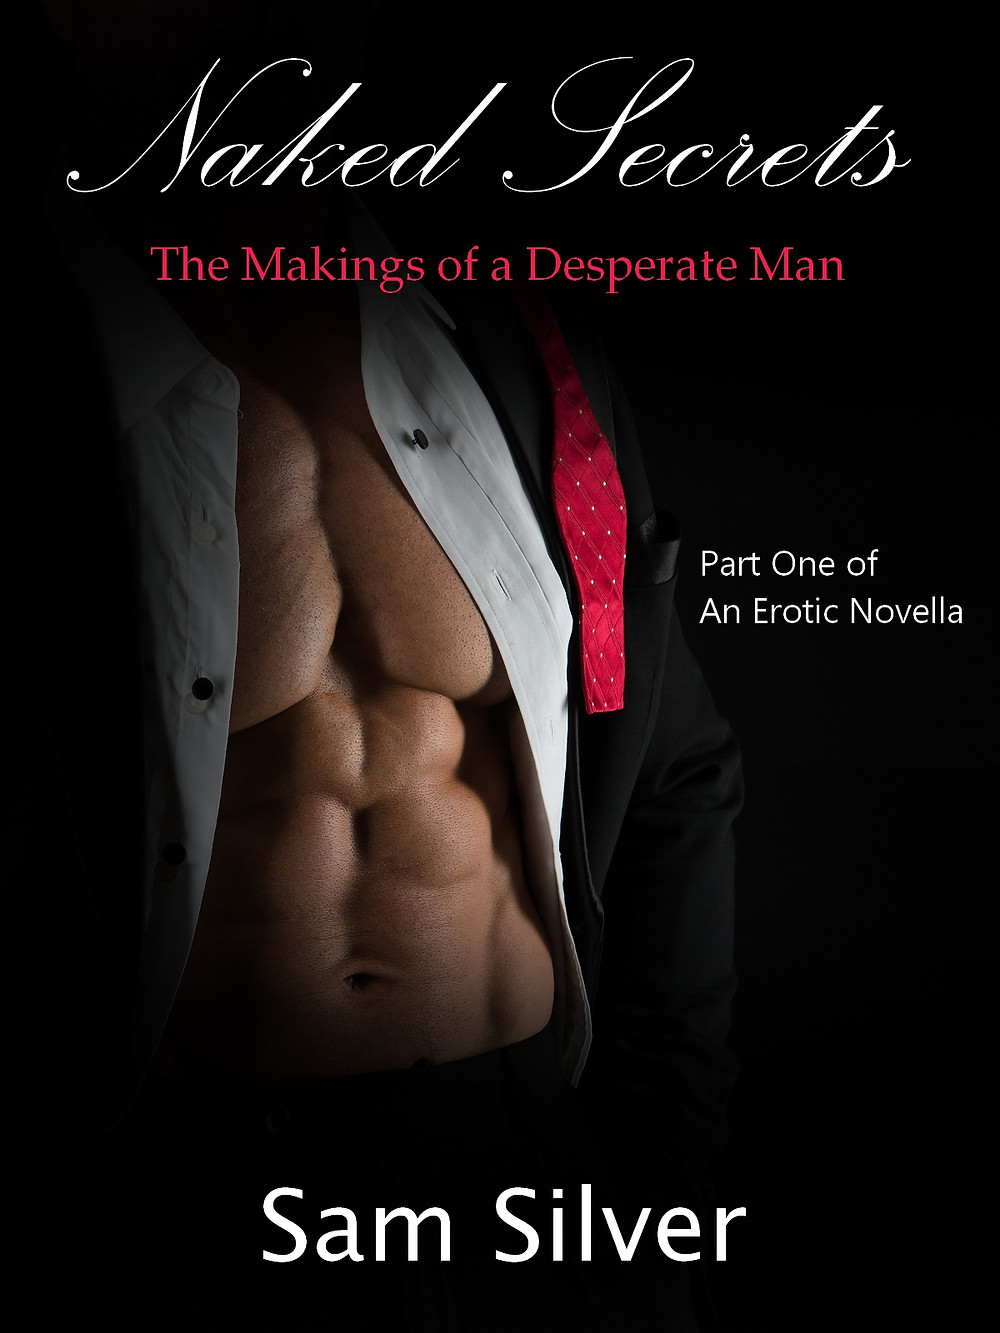 Original book cover to Samuel Silver's erotica story novella, 'The Makings of a Desperate Man (Naked Secrets 1)'